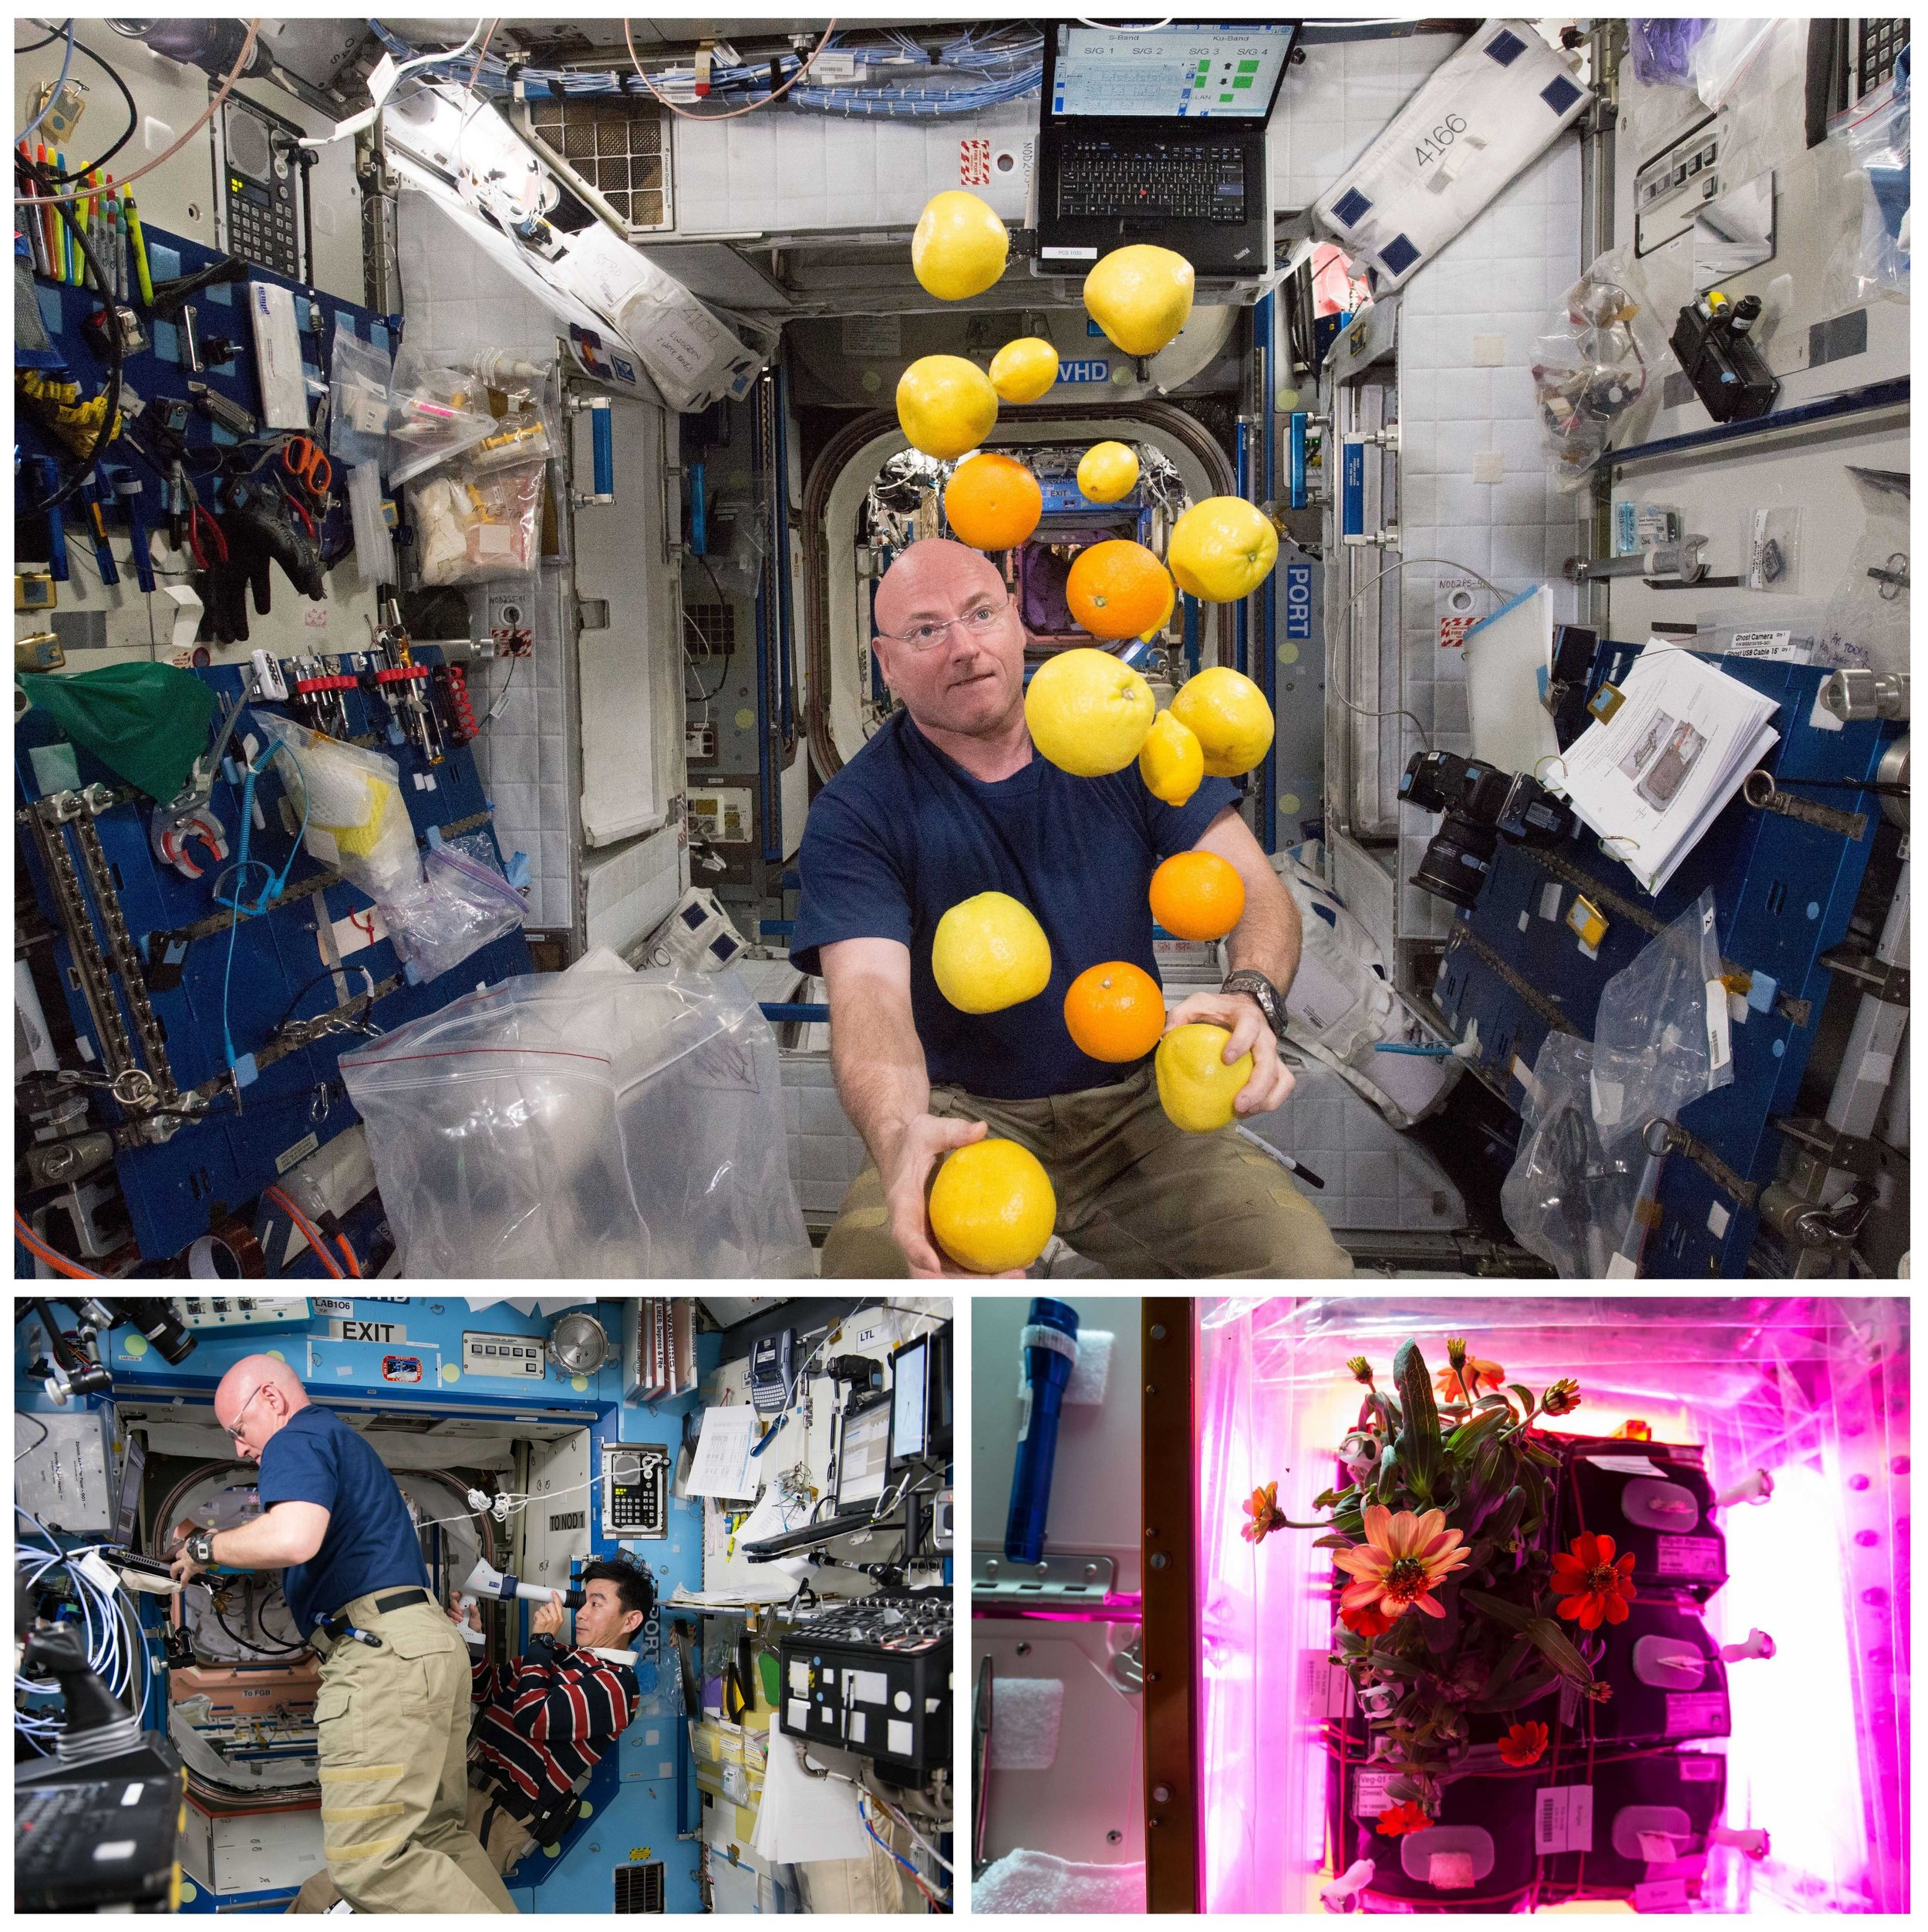 (Top) Kelly corrals a supply of fresh fruit that arrived on a Japanese cargo ship on Aug. 25. (Bottom left) Kelly assisted with numerous studies to see how prolonged spaceflight affects vision and other aspects of human health. The results of those tests won't be available for another year or so. (Bottom right) The crew also grew crops in zero gravity, including these zinnias.